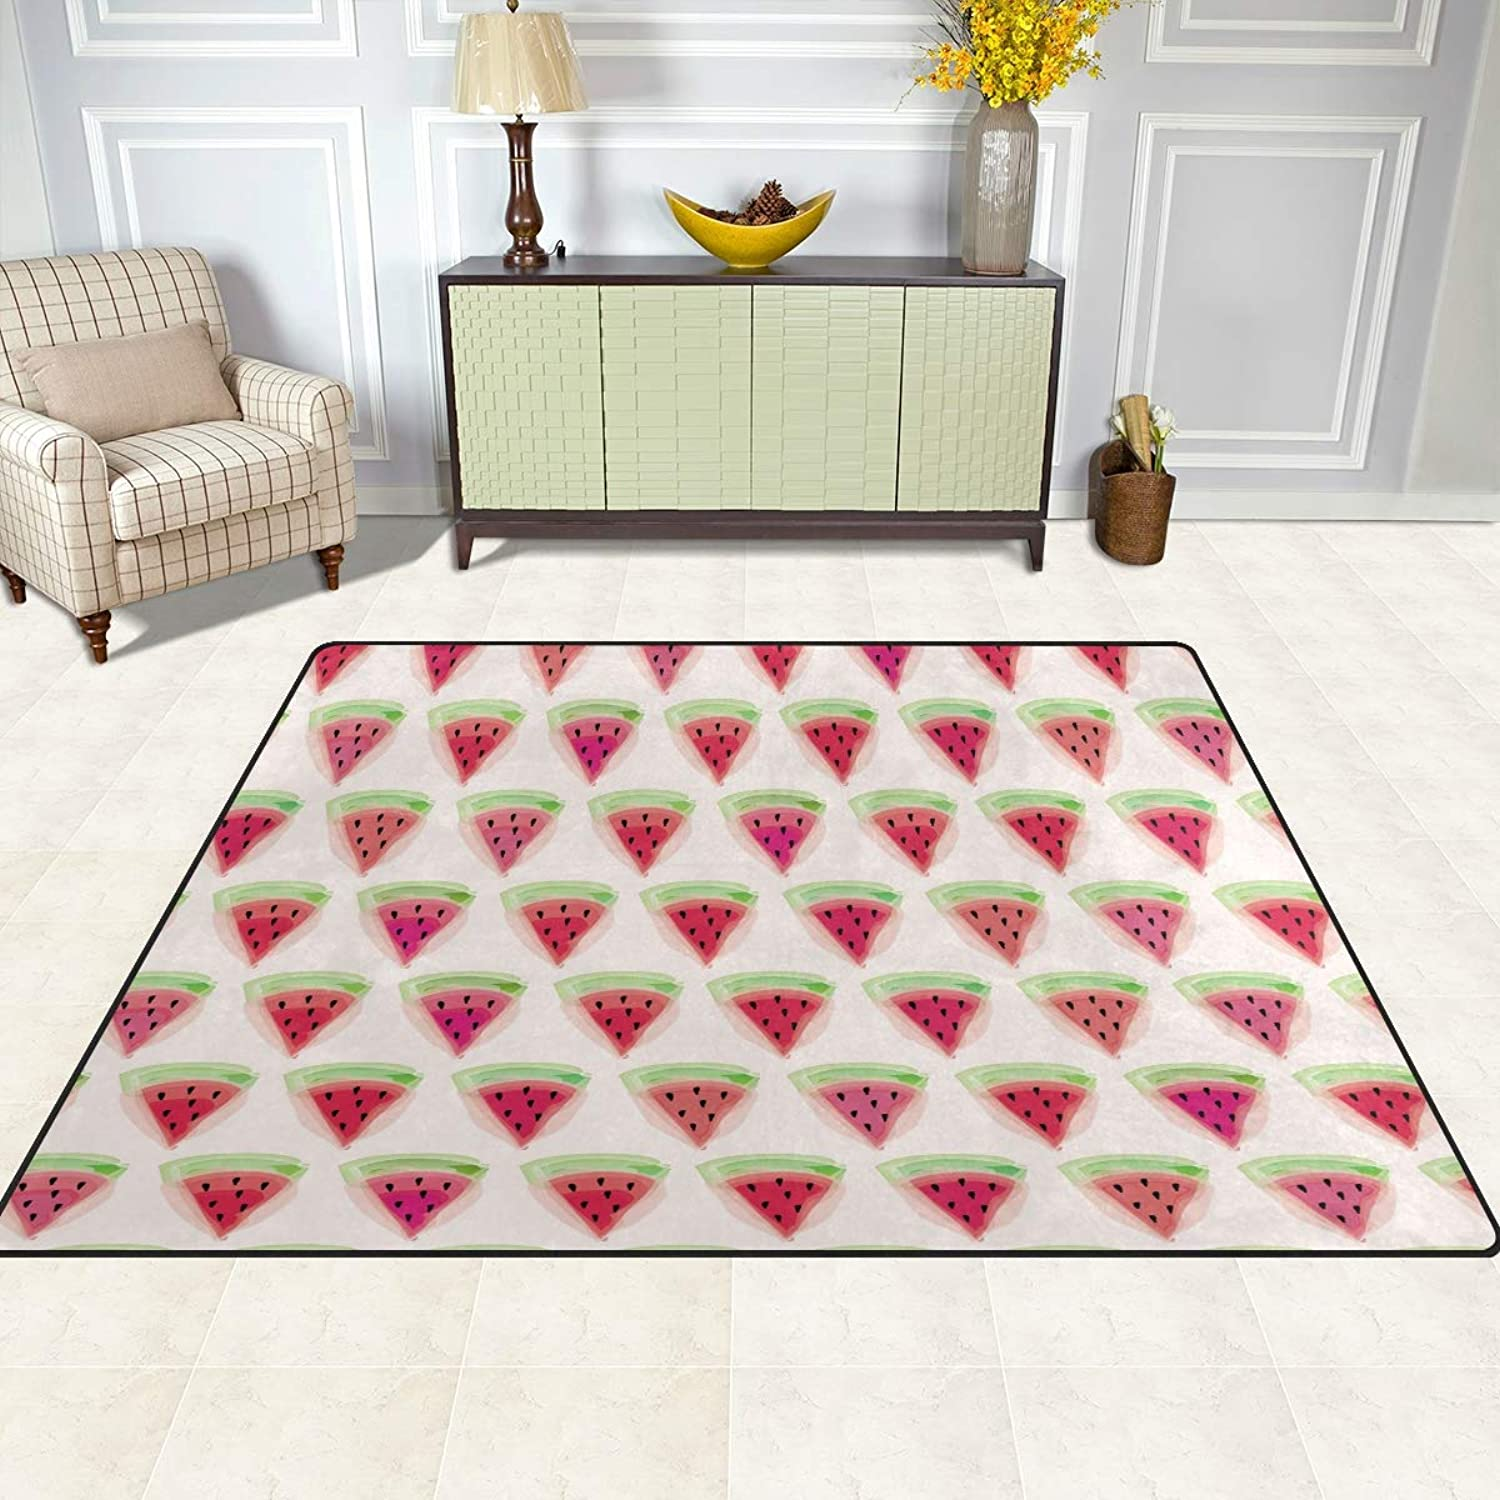 FAJRO Watermelon Pattern Rugs for entryway Doormat Area Rug Multipattern Door Mat shoes Scraper Home Dec Anti-Slip Indoor Outdoor